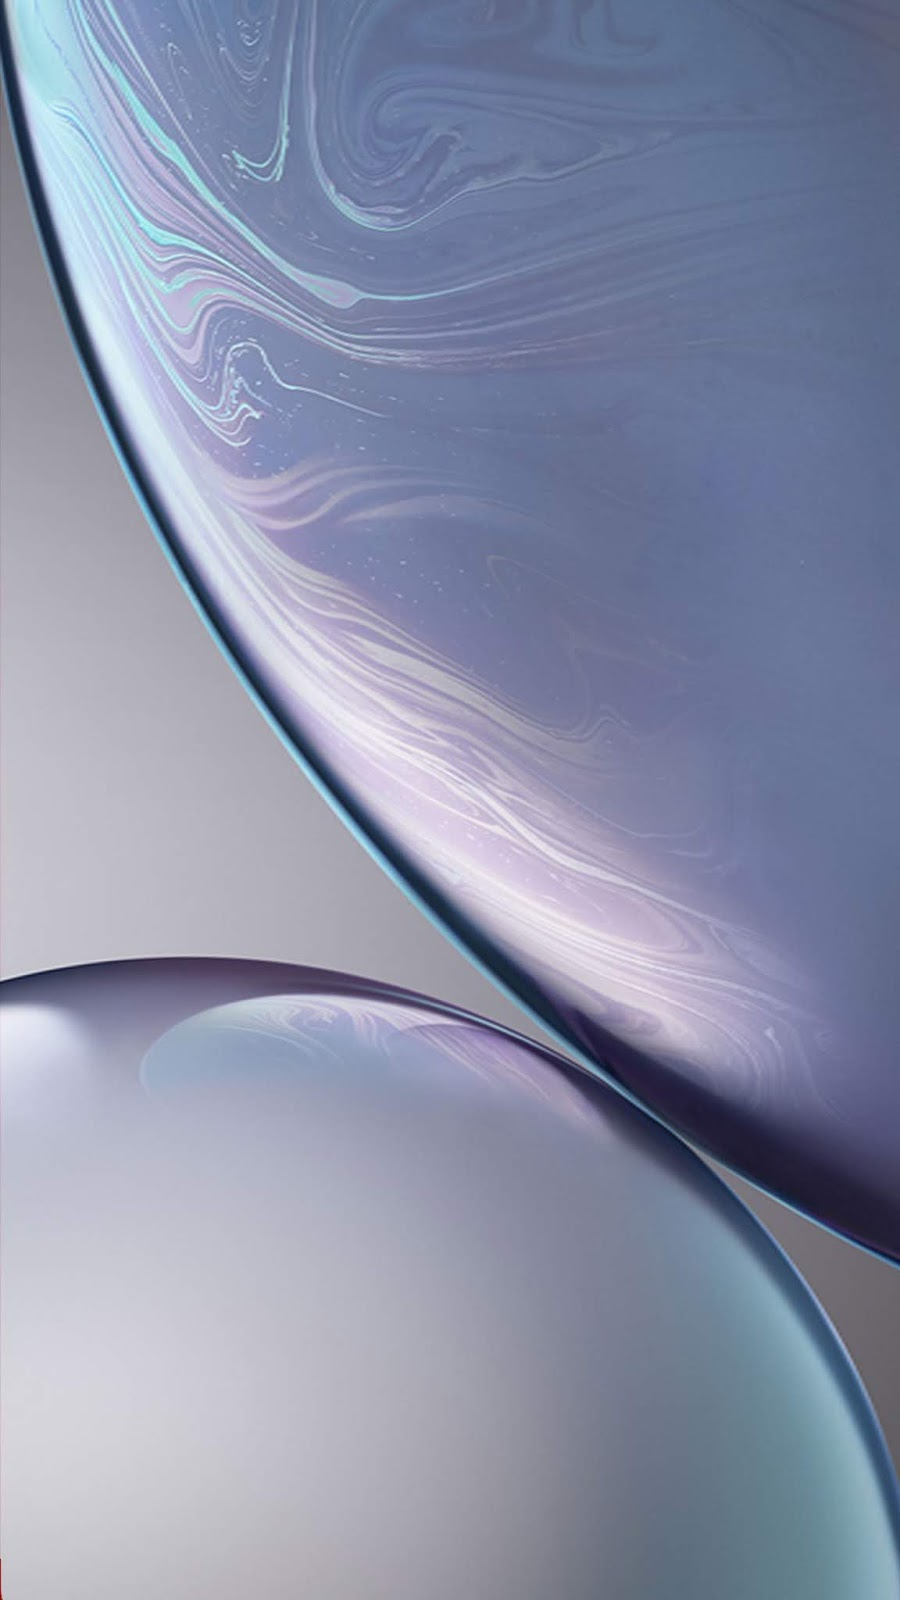 iPhone XR wallpaper7